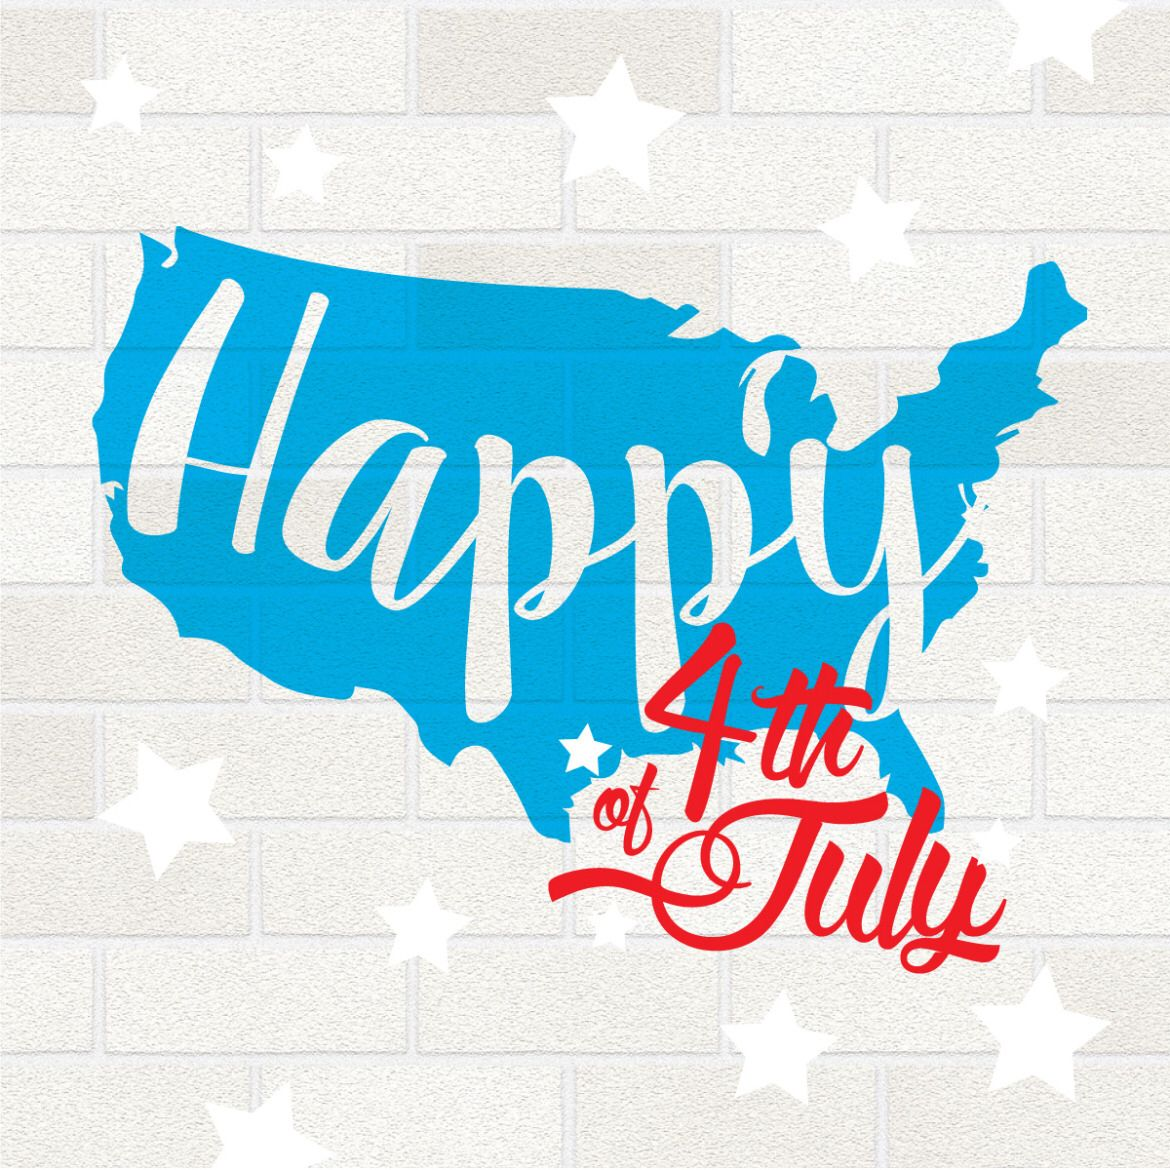 Happy 4th of July Holiday artwork, Dental, colors